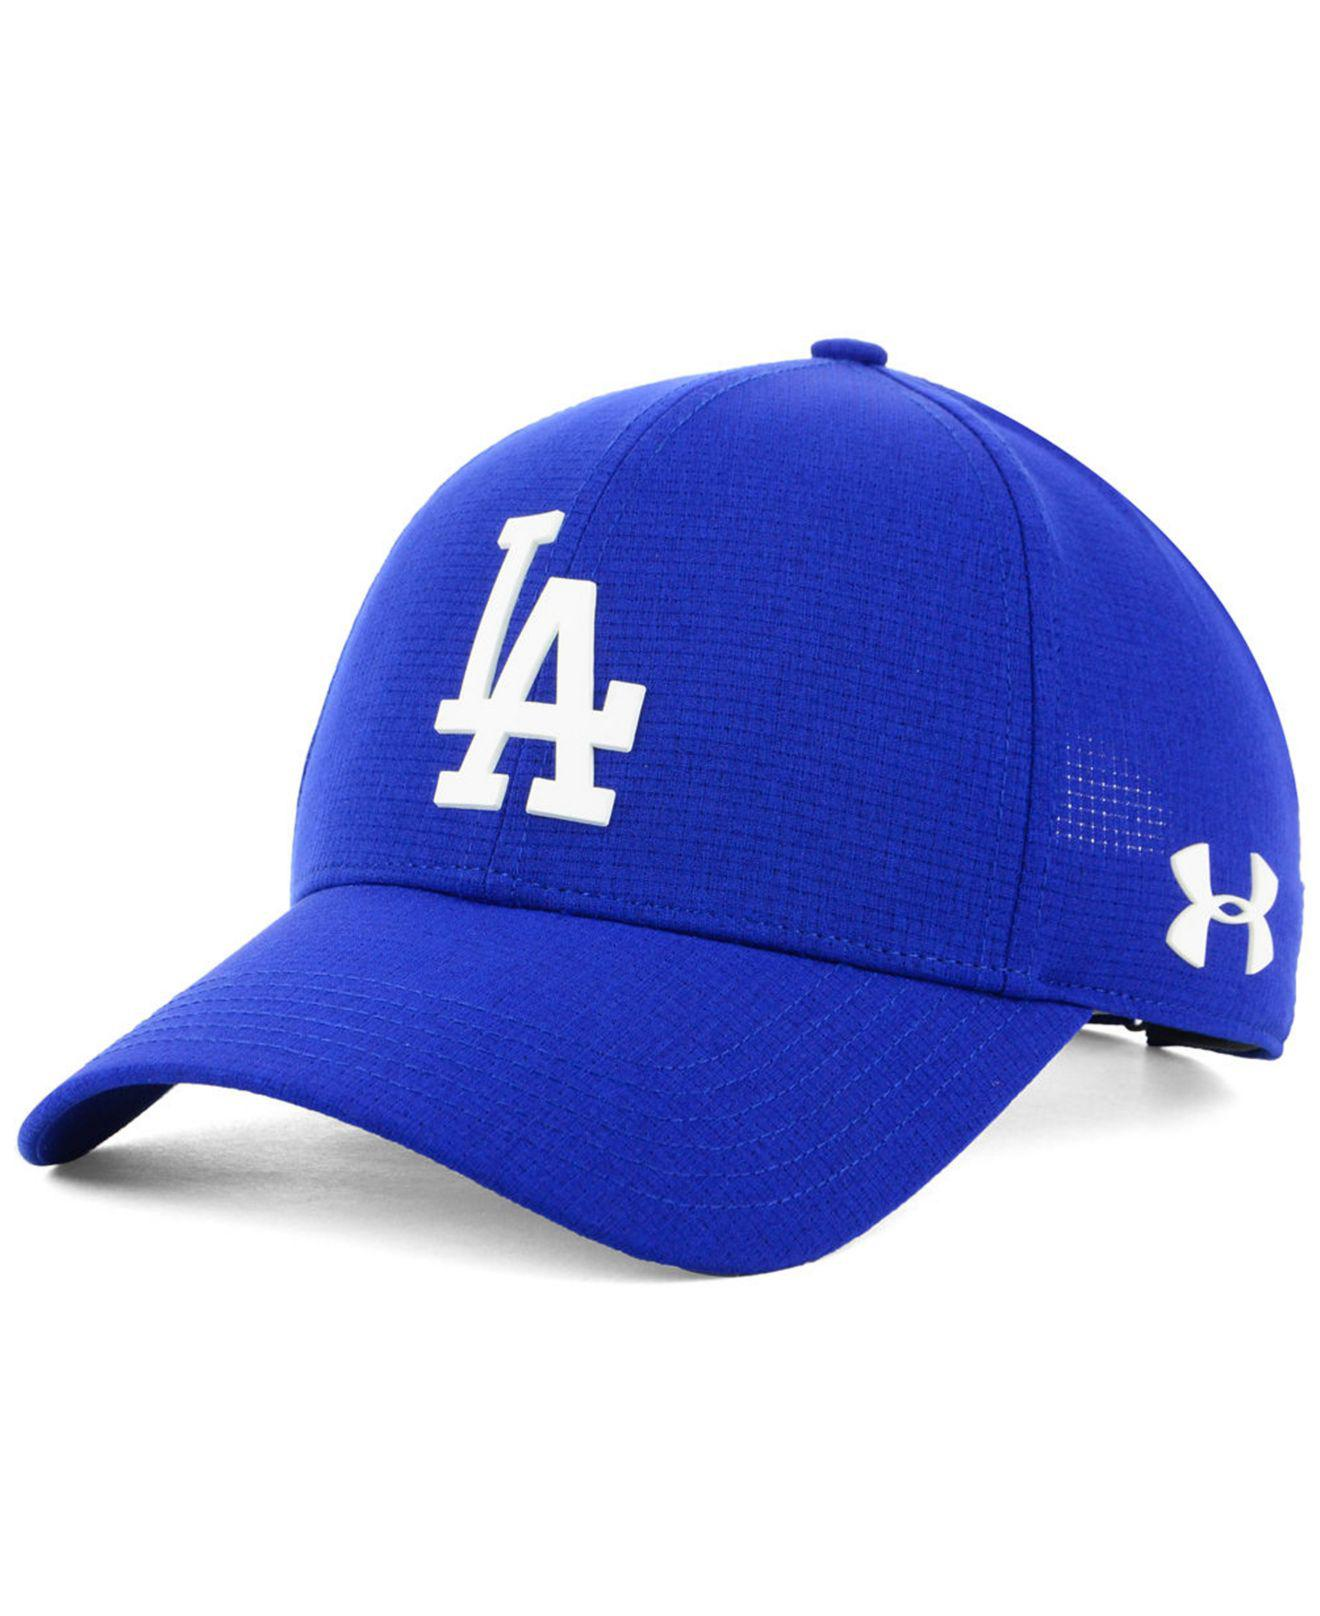 Lyst - Under Armour Los Angeles Dodgers Driver Cap in Blue for Men bd271afb26b4